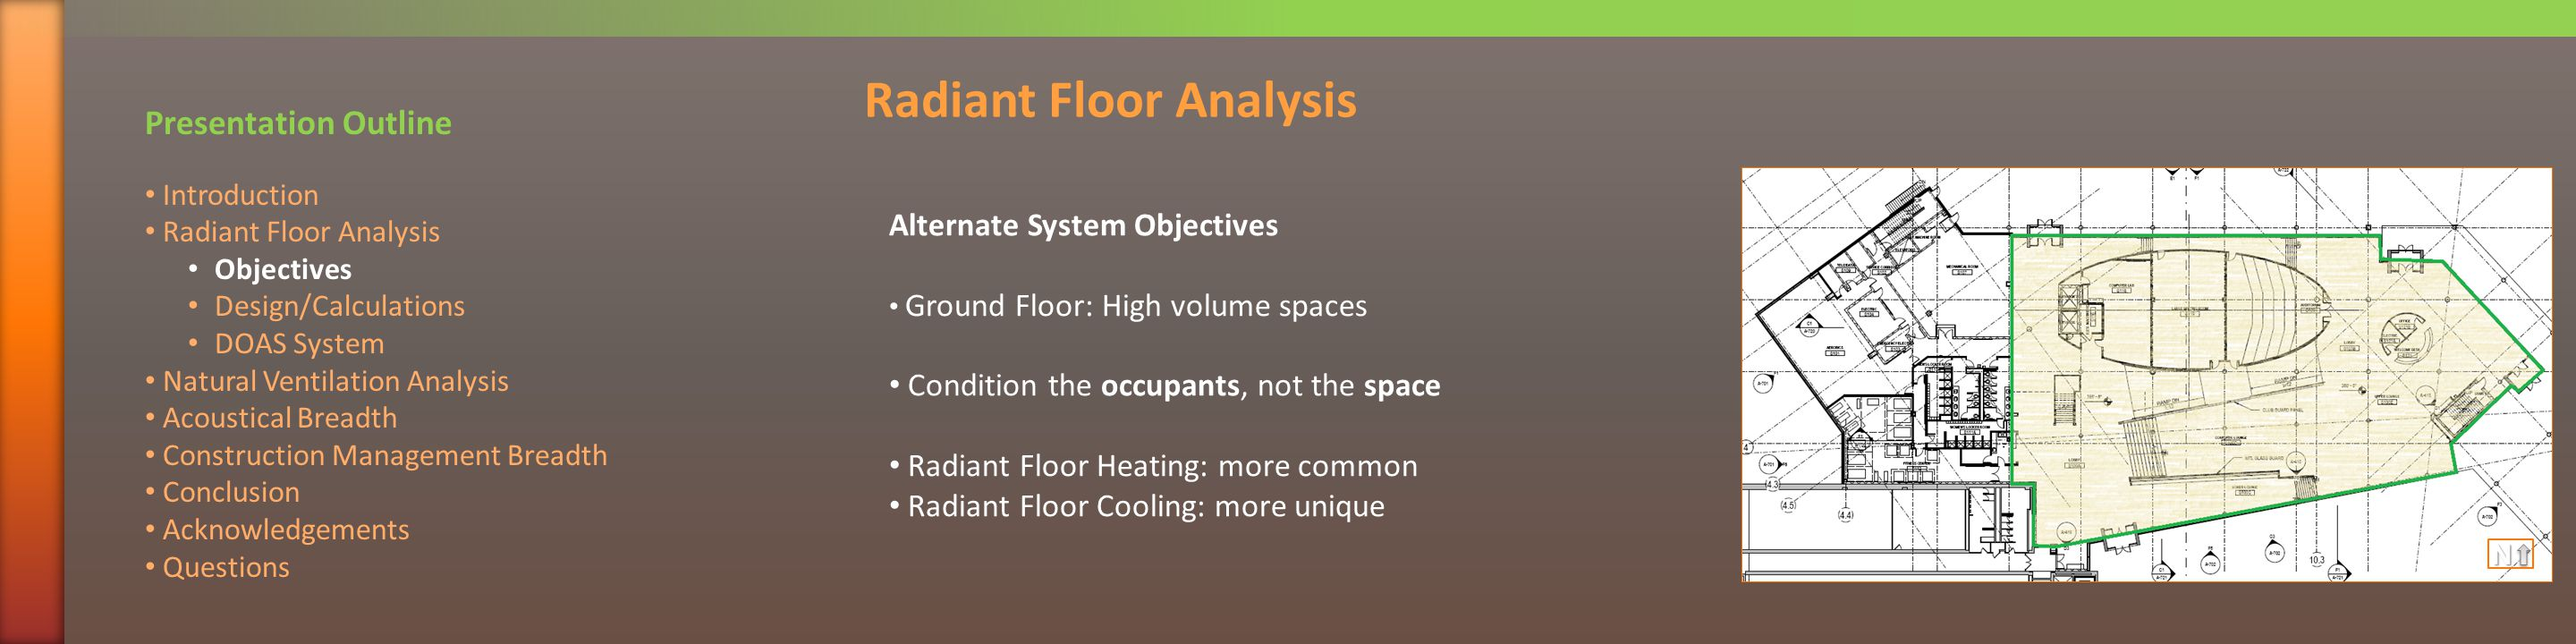 Alternate System Objectives Ground Floor: High volume spaces Condition the occupants, not the space Radiant Floor Heating: more common Radiant Floor Cooling: more unique Radiant Floor Analysis Presentation Outline Introduction Radiant Floor Analysis Objectives Design/Calculations DOAS System Natural Ventilation Analysis Acoustical Breadth Construction Management Breadth Conclusion Acknowledgements QuestionsN